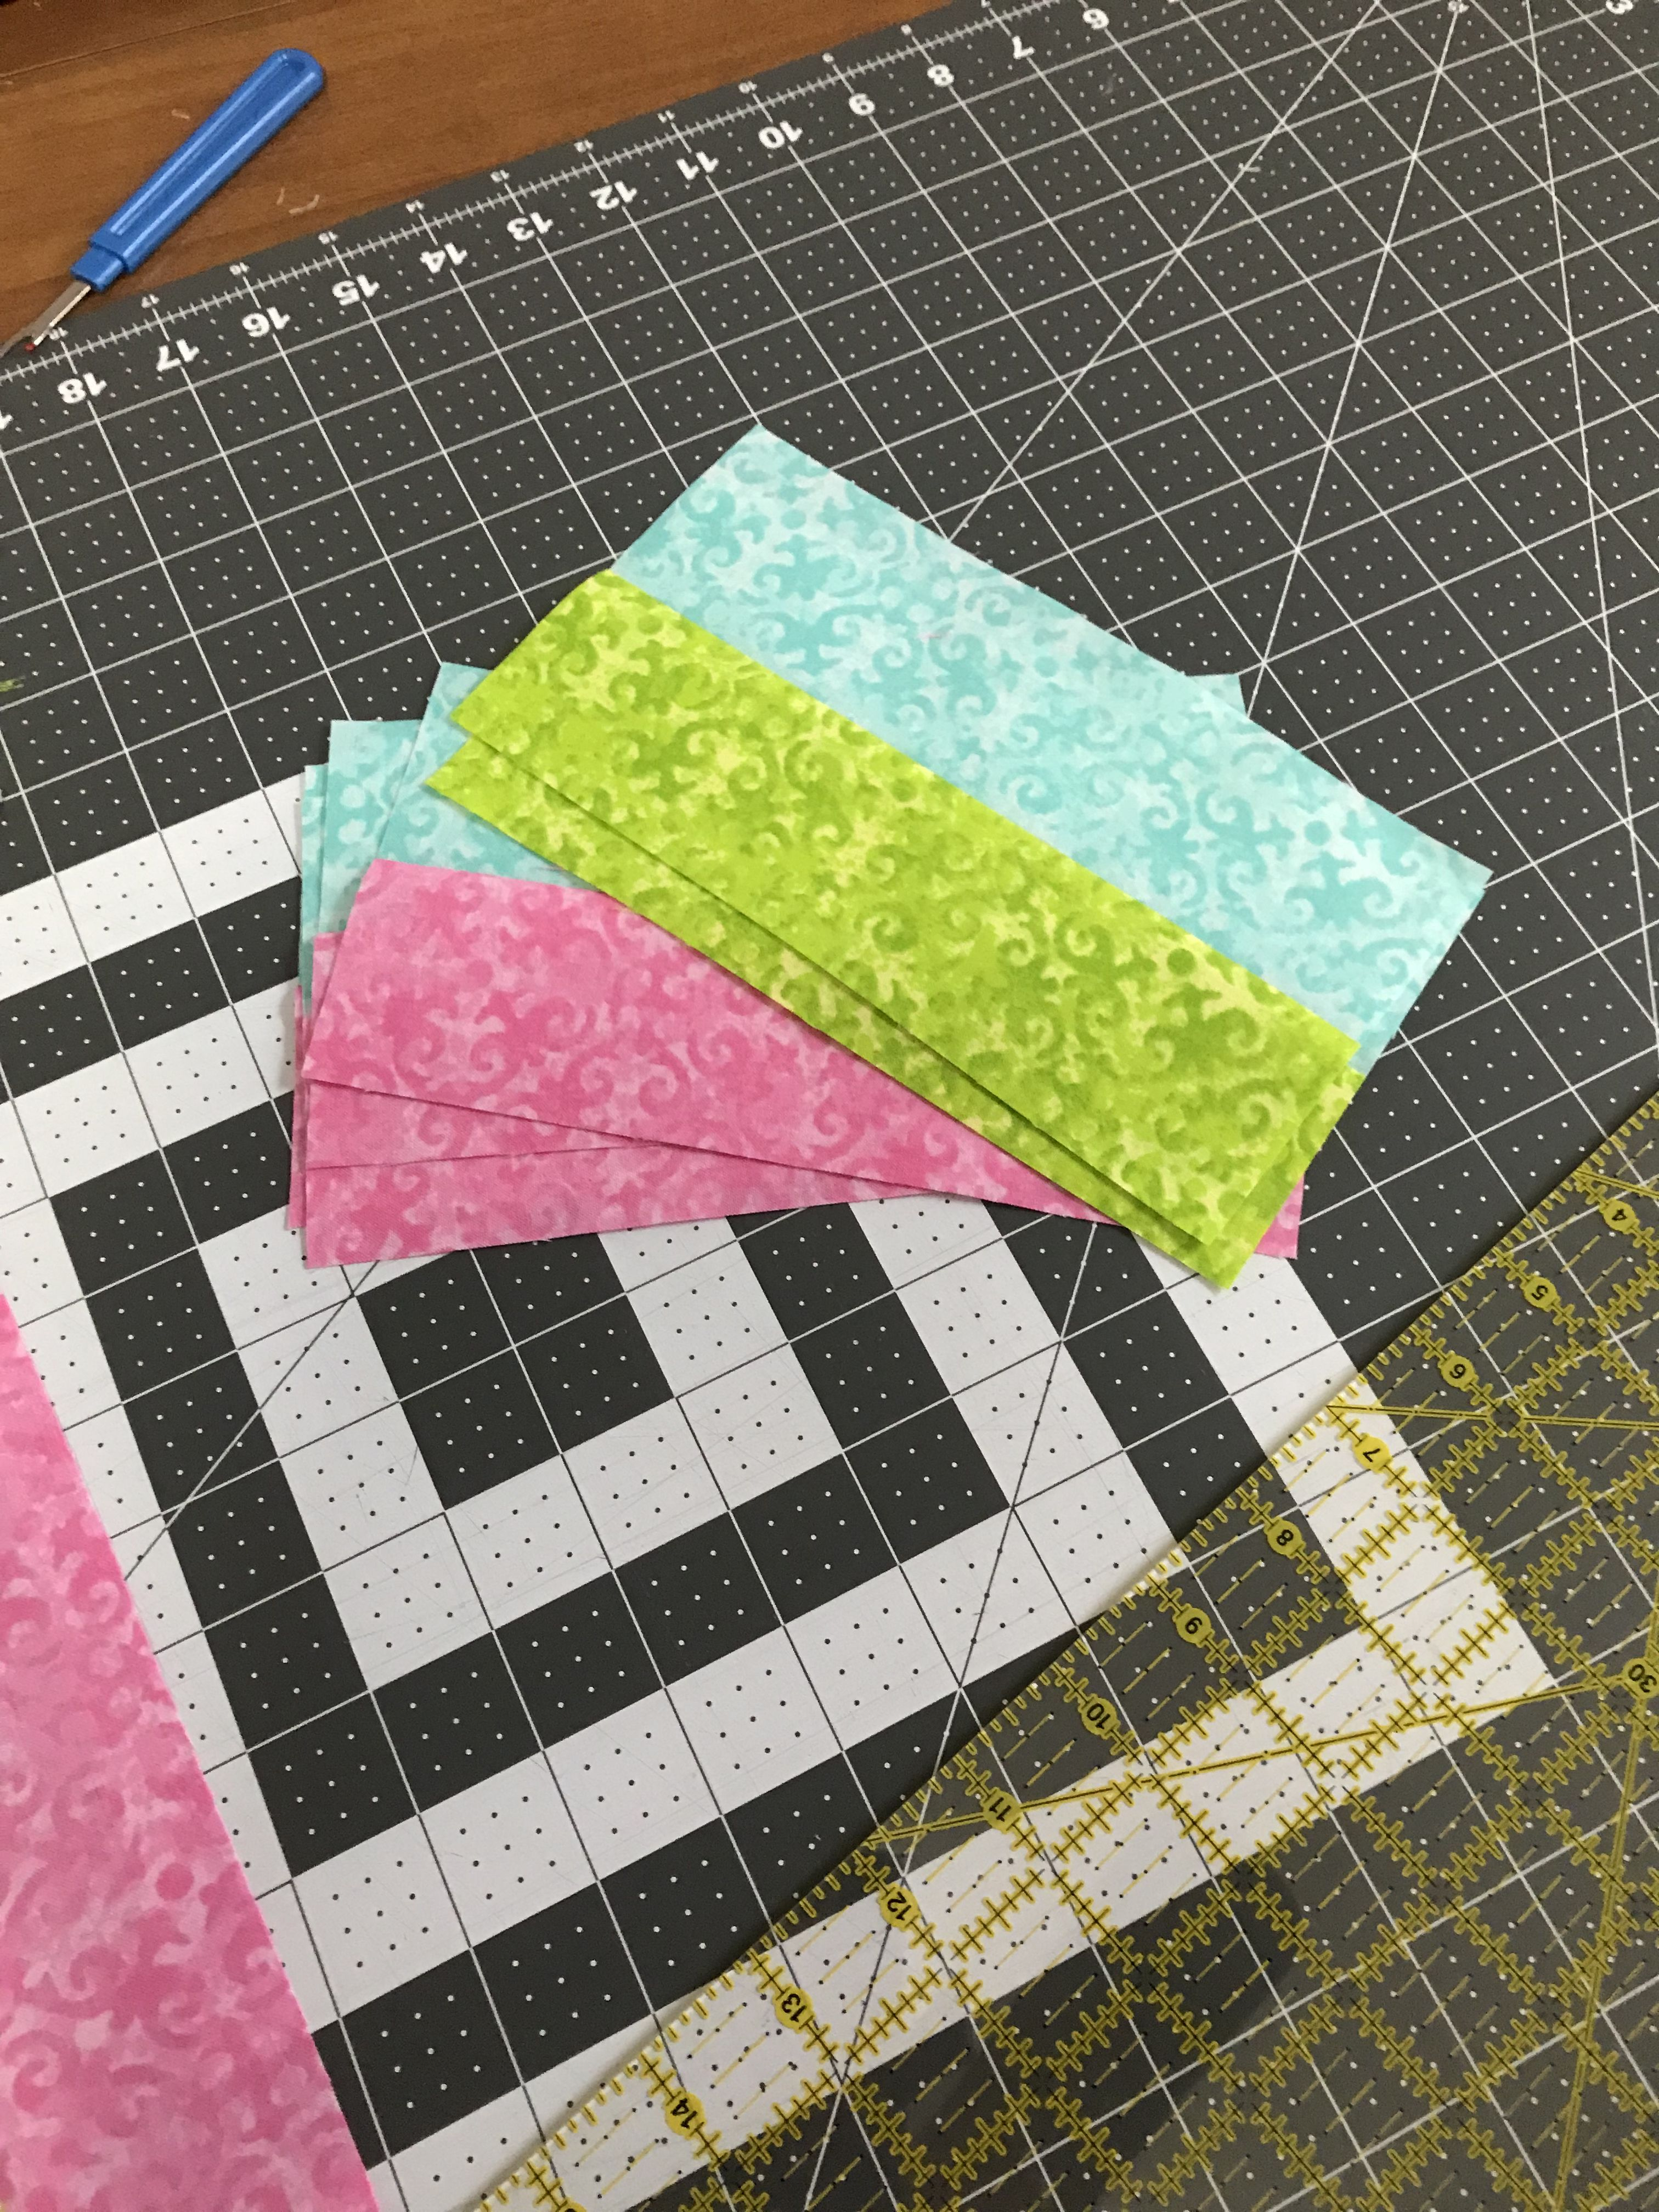 Pin by Teena Walls on My Quilts Decor, Home decor, Quilts